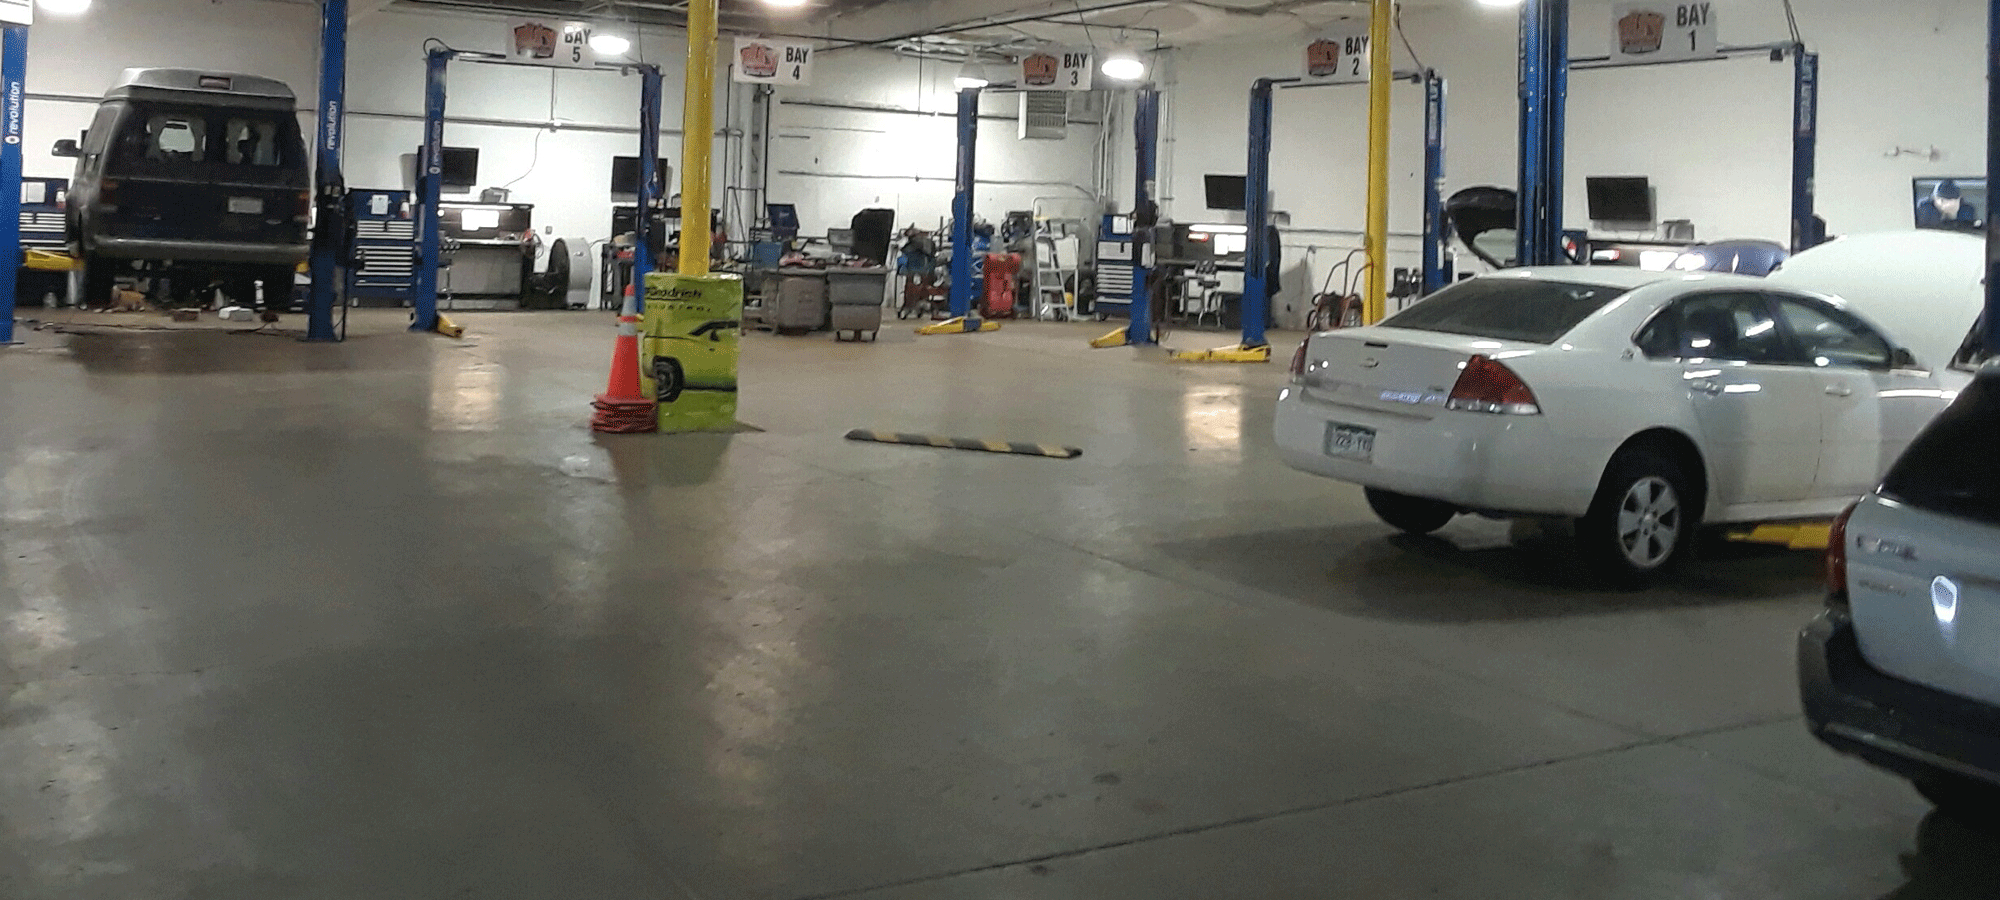 Diy auto repair shops equipped self service garage bays save even more money on auto repair solutioingenieria Image collections